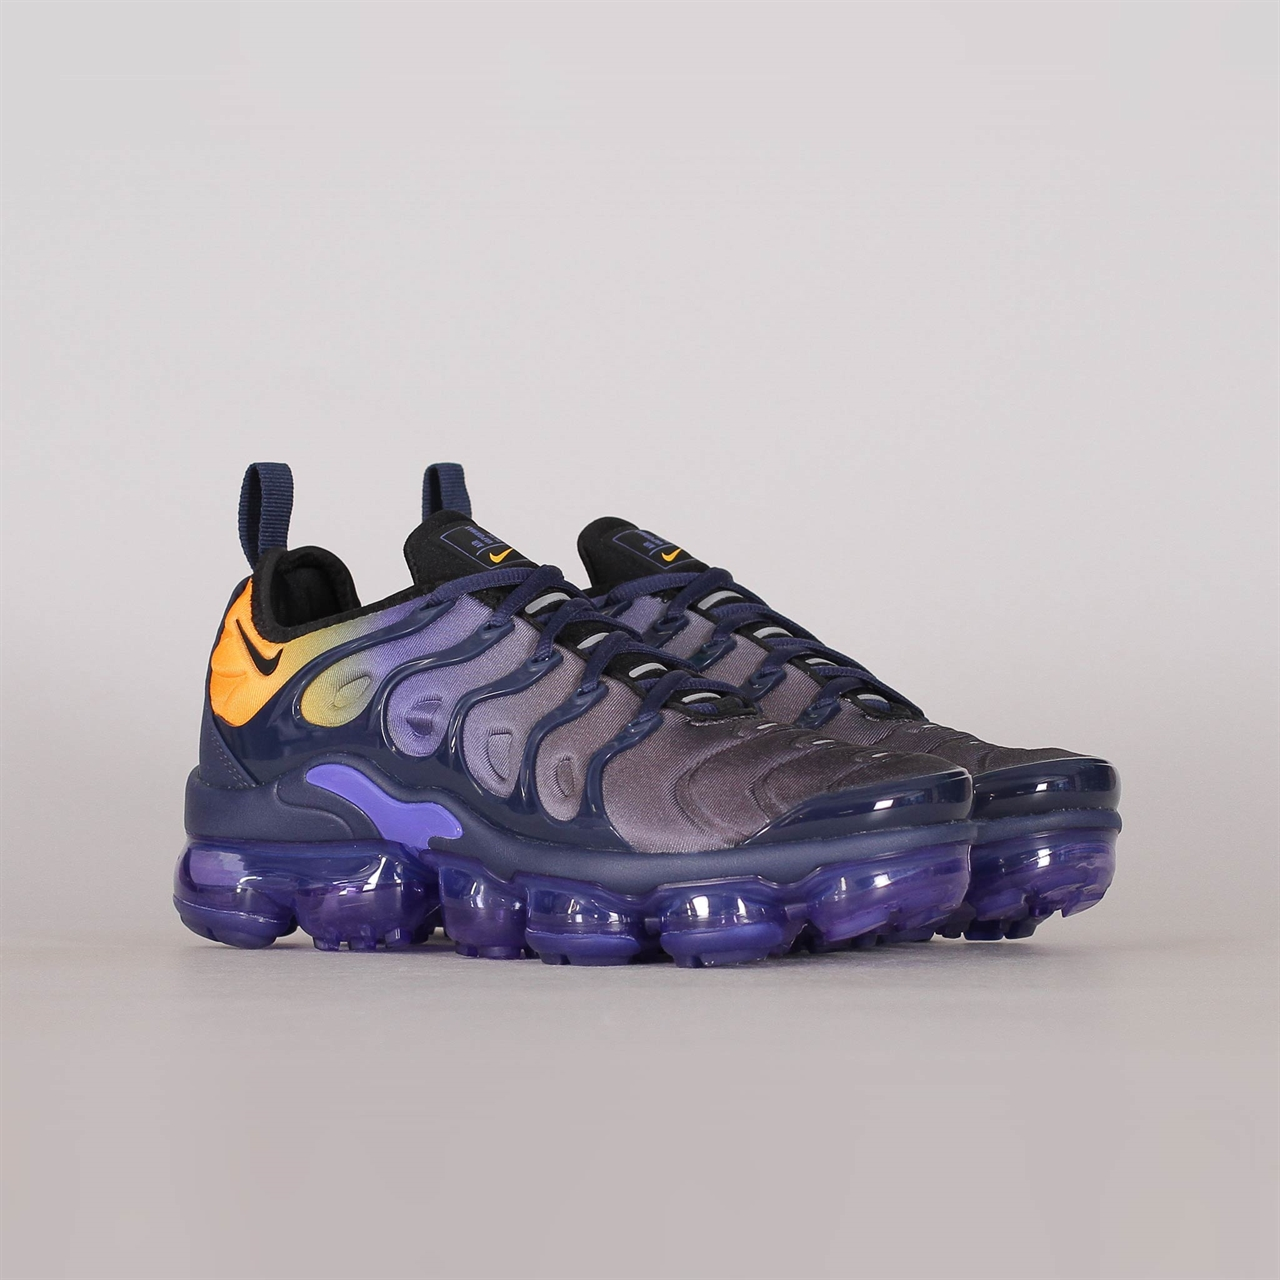 newest 21c48 9d907 Shelta - Nike Womens Air Vapormax Plus (AO4550-500)